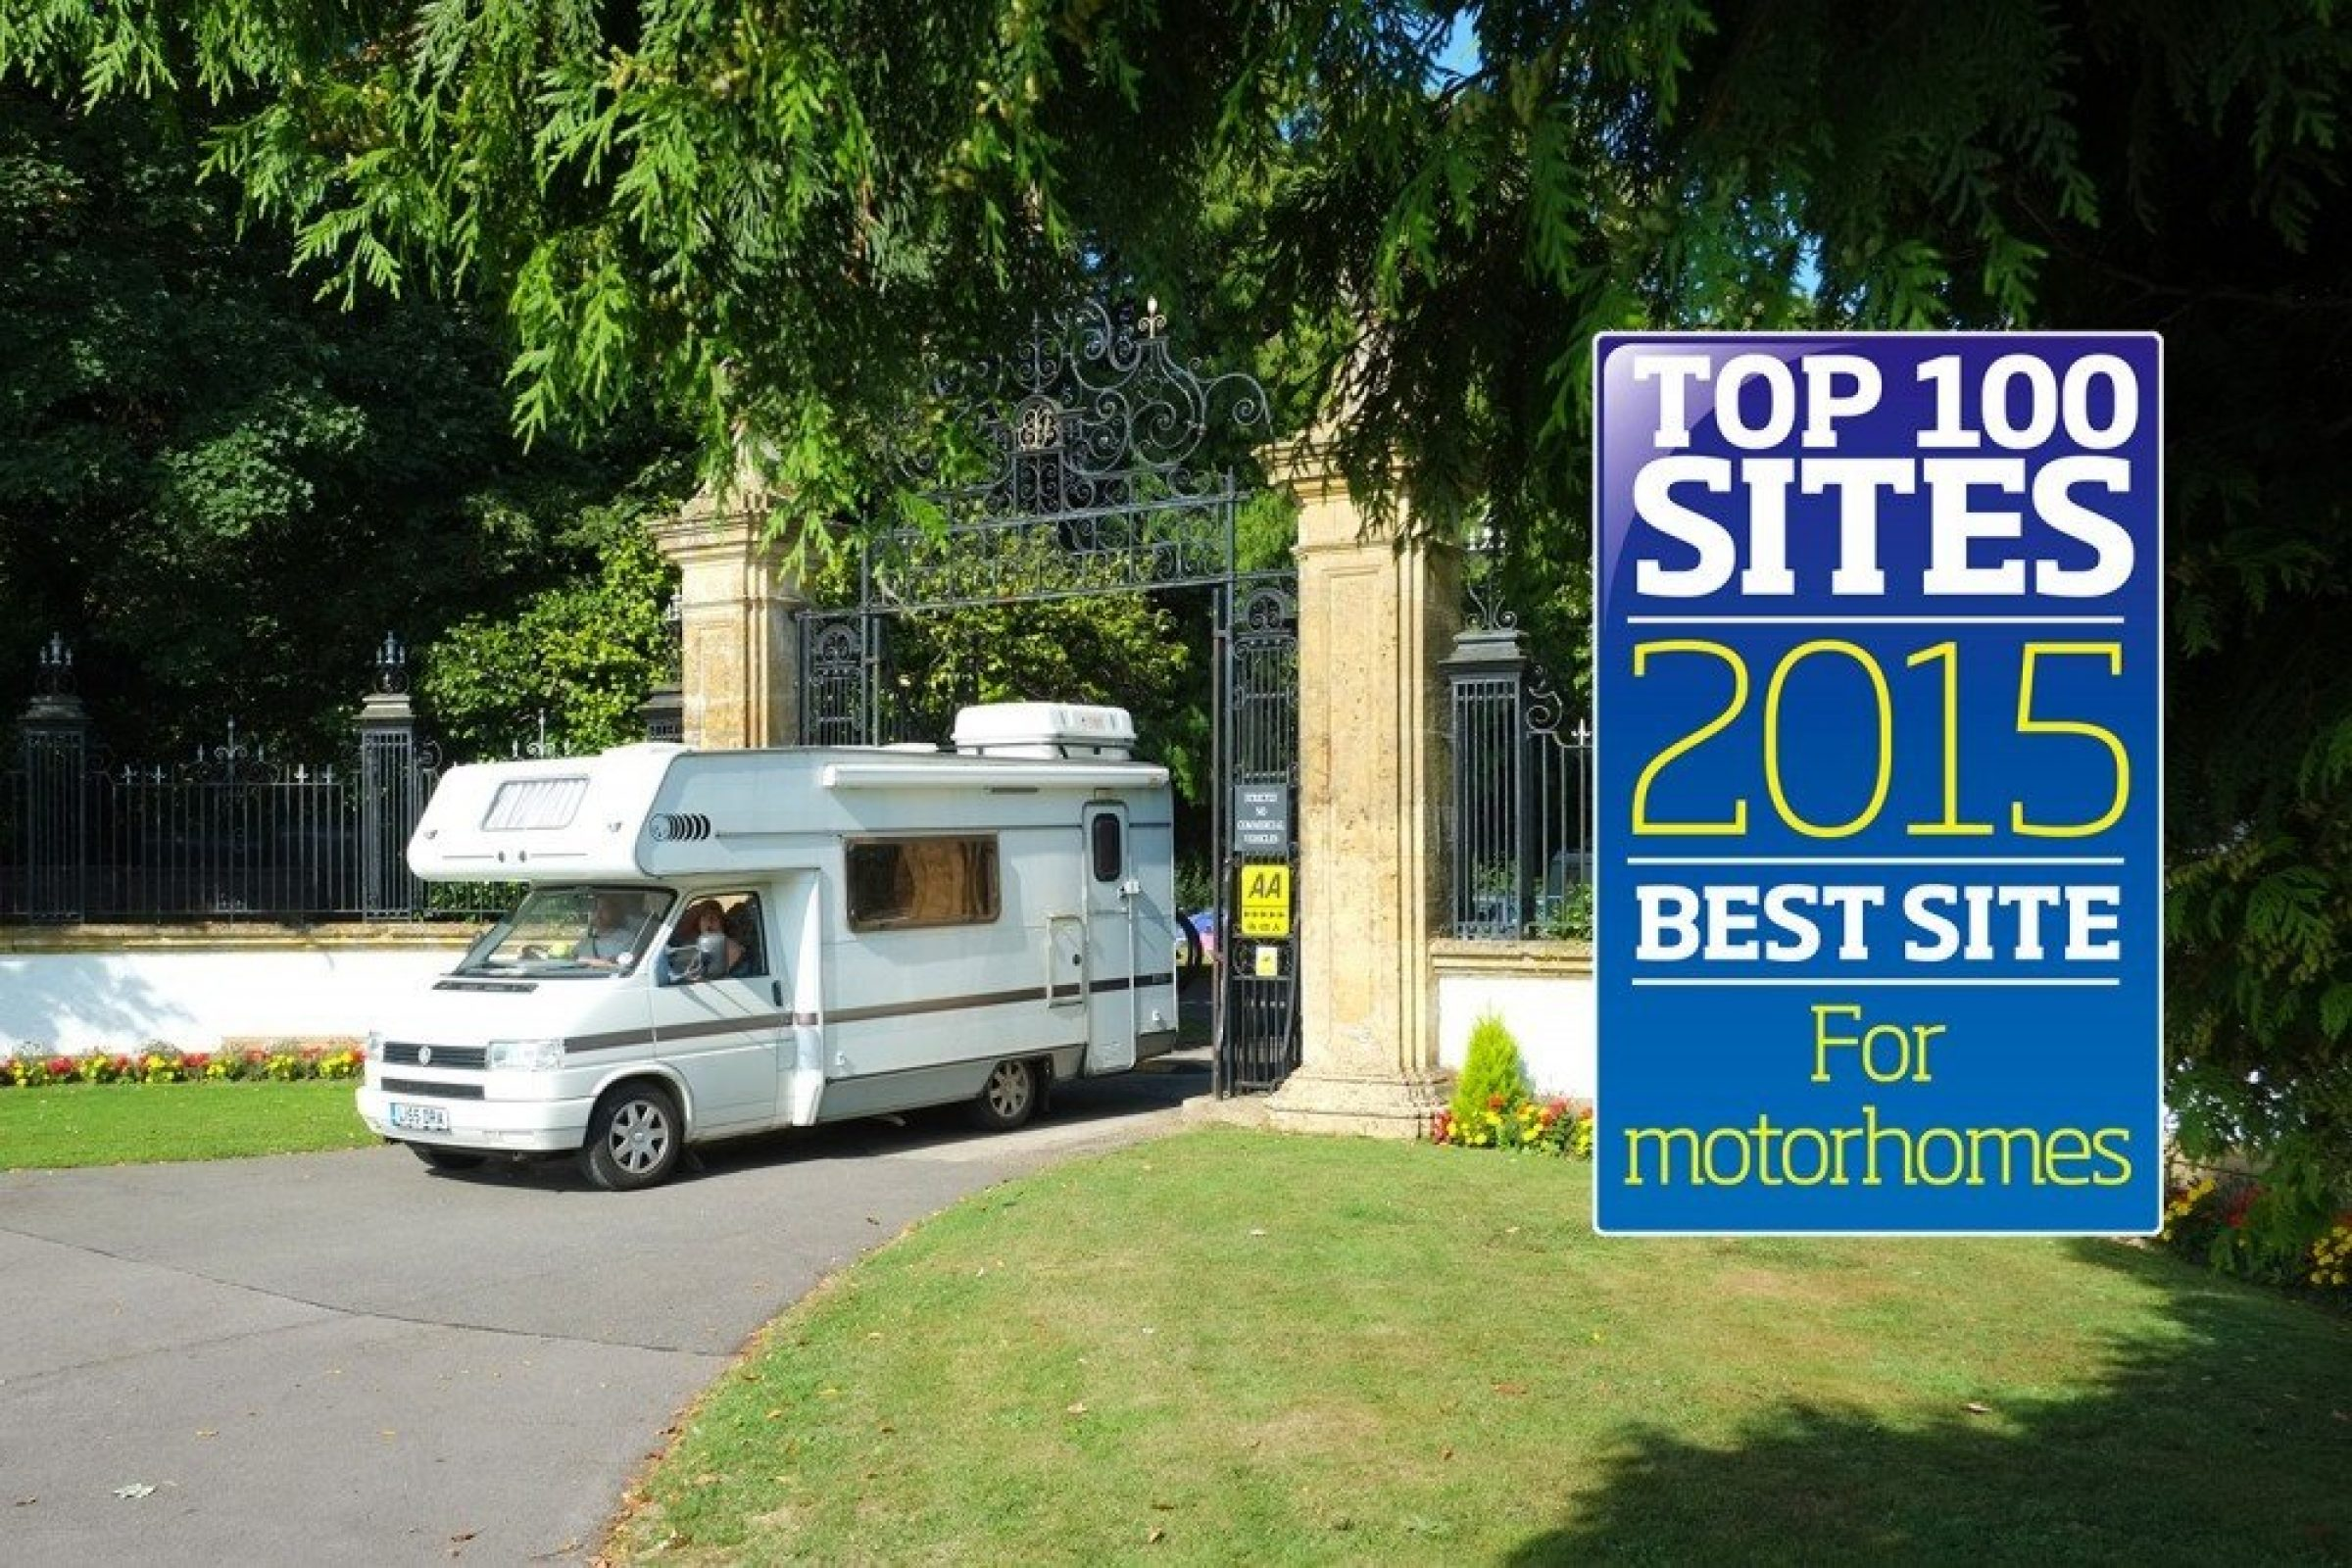 South Lytchett Manor Is The Best Park In The UK For Motorhomes